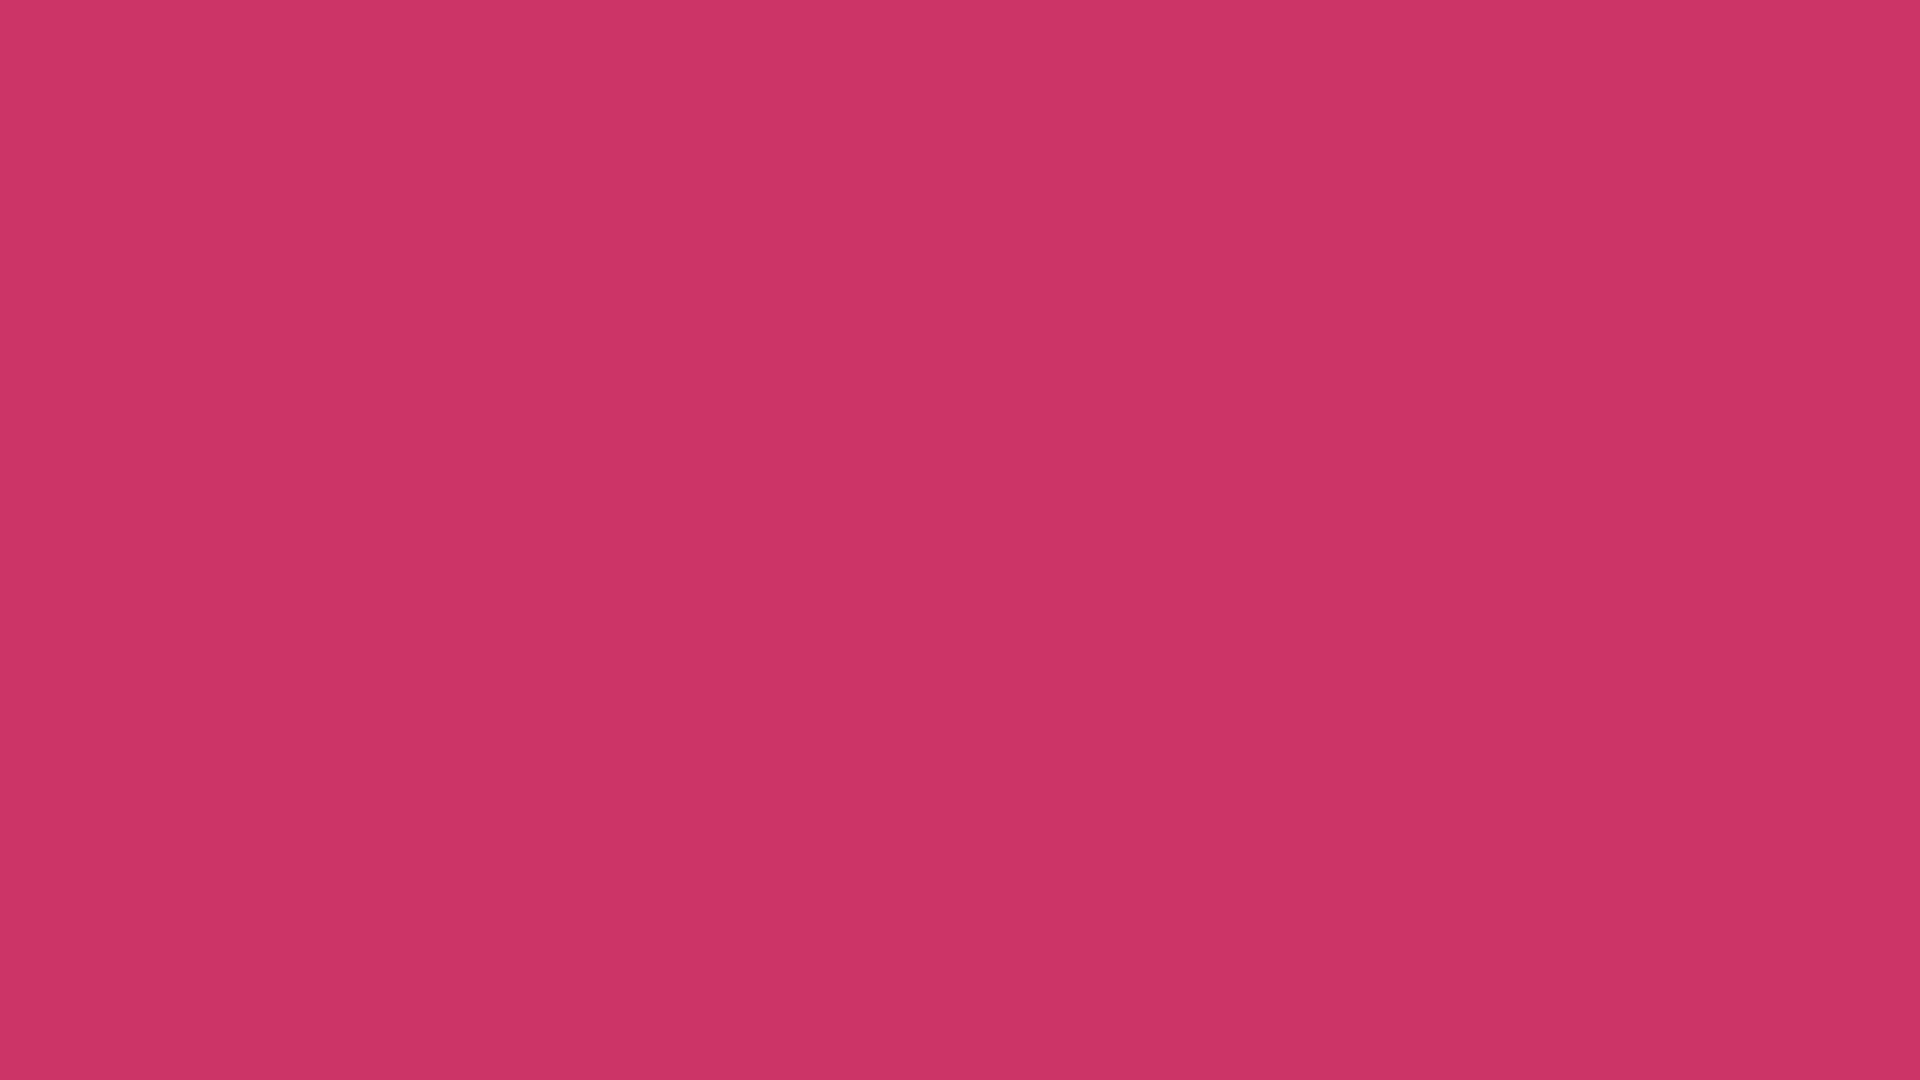 1920x1080 Steel Pink Solid Color Background Solid Color Backgrounds Colour Images Solid Color